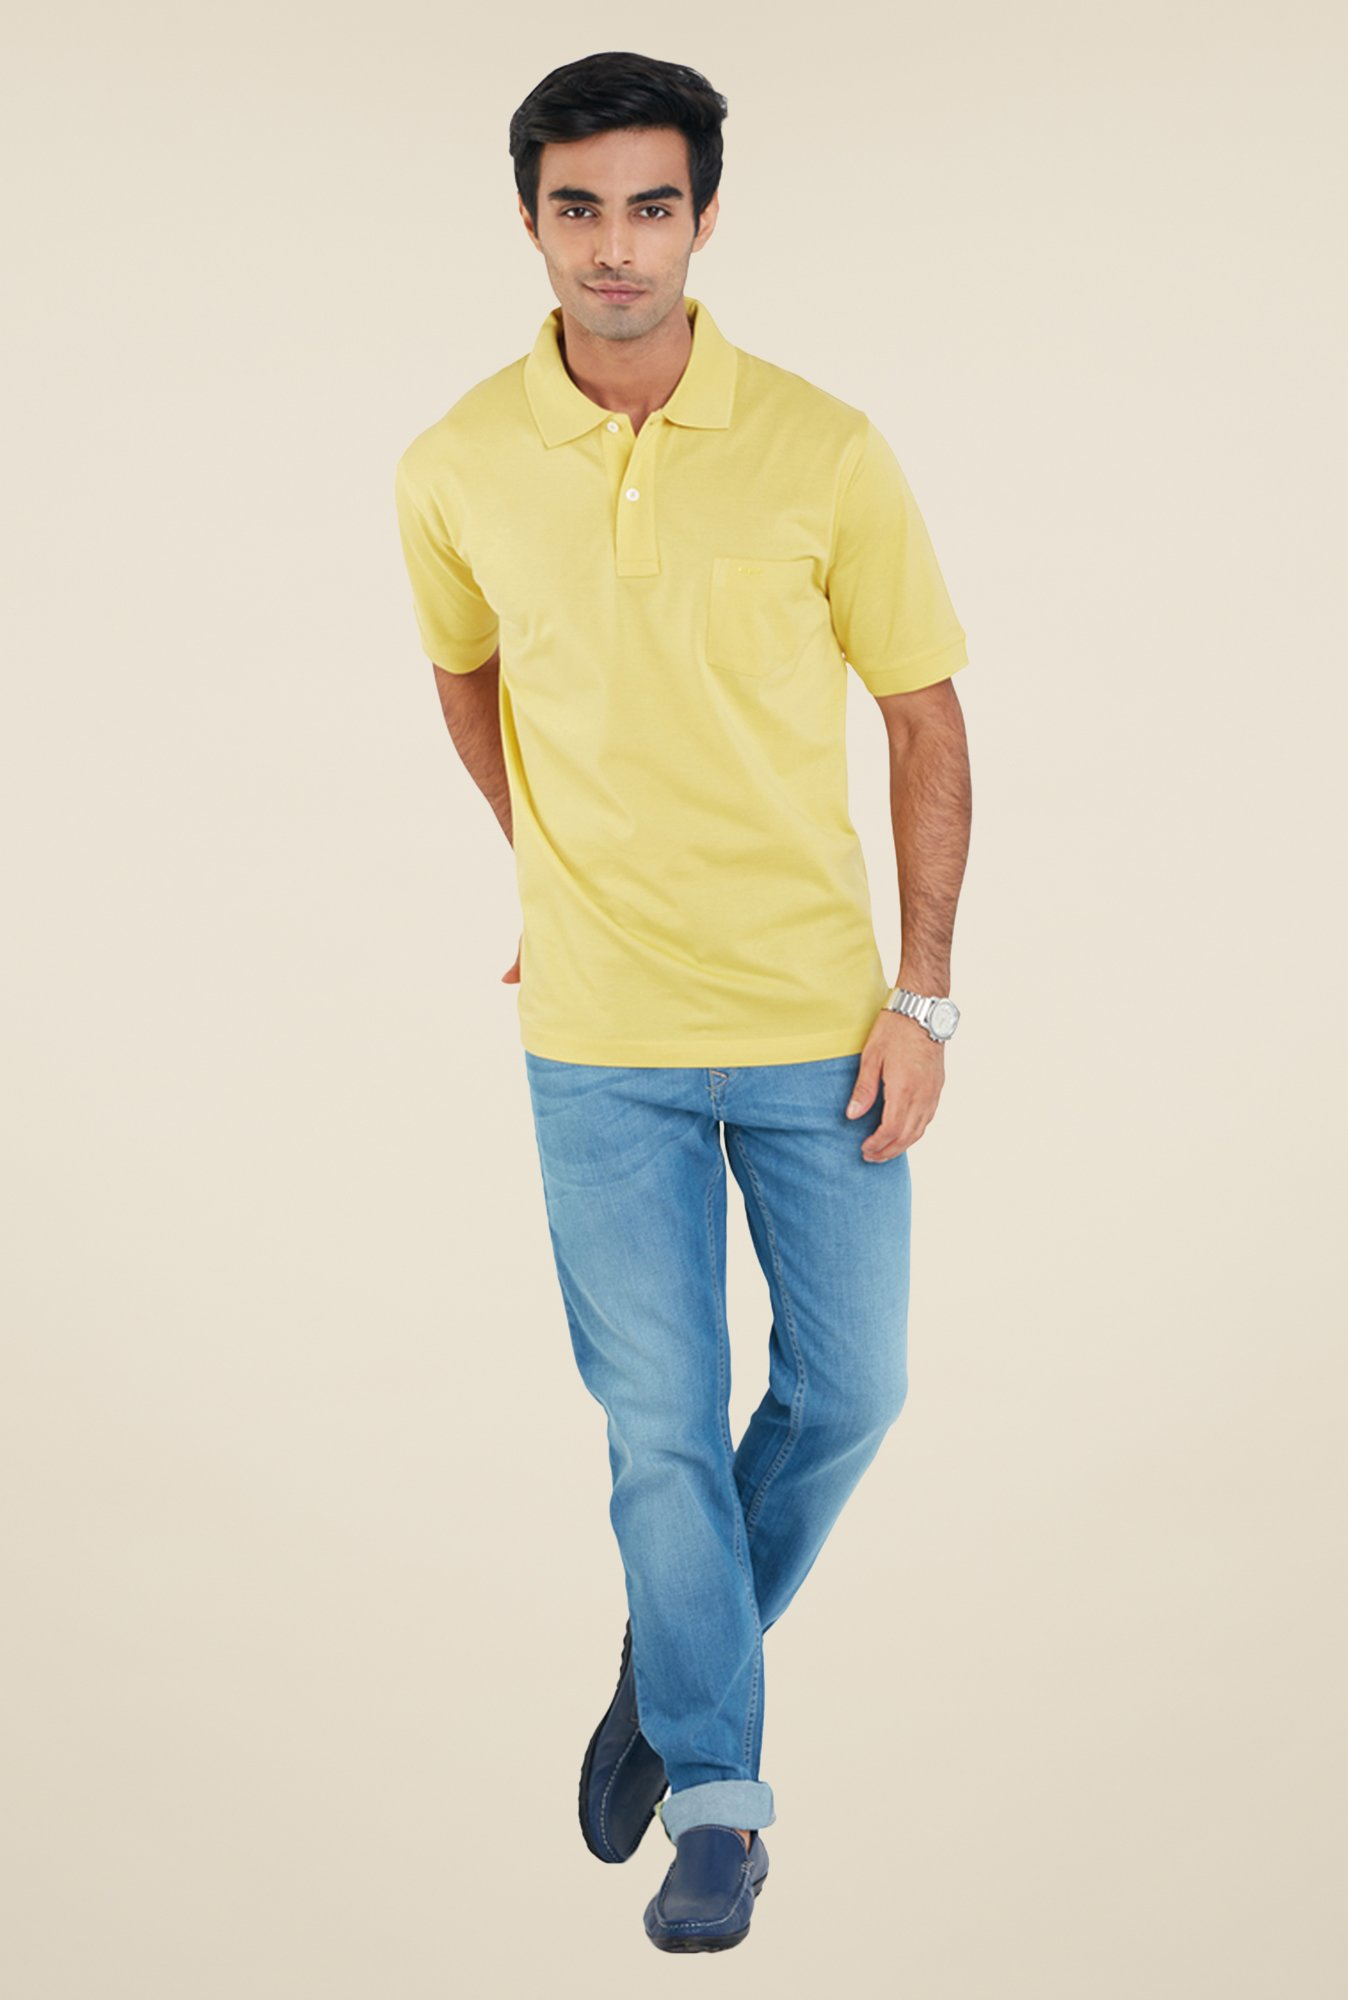 ColorPlus Yellow Solid Cotton T Shirt